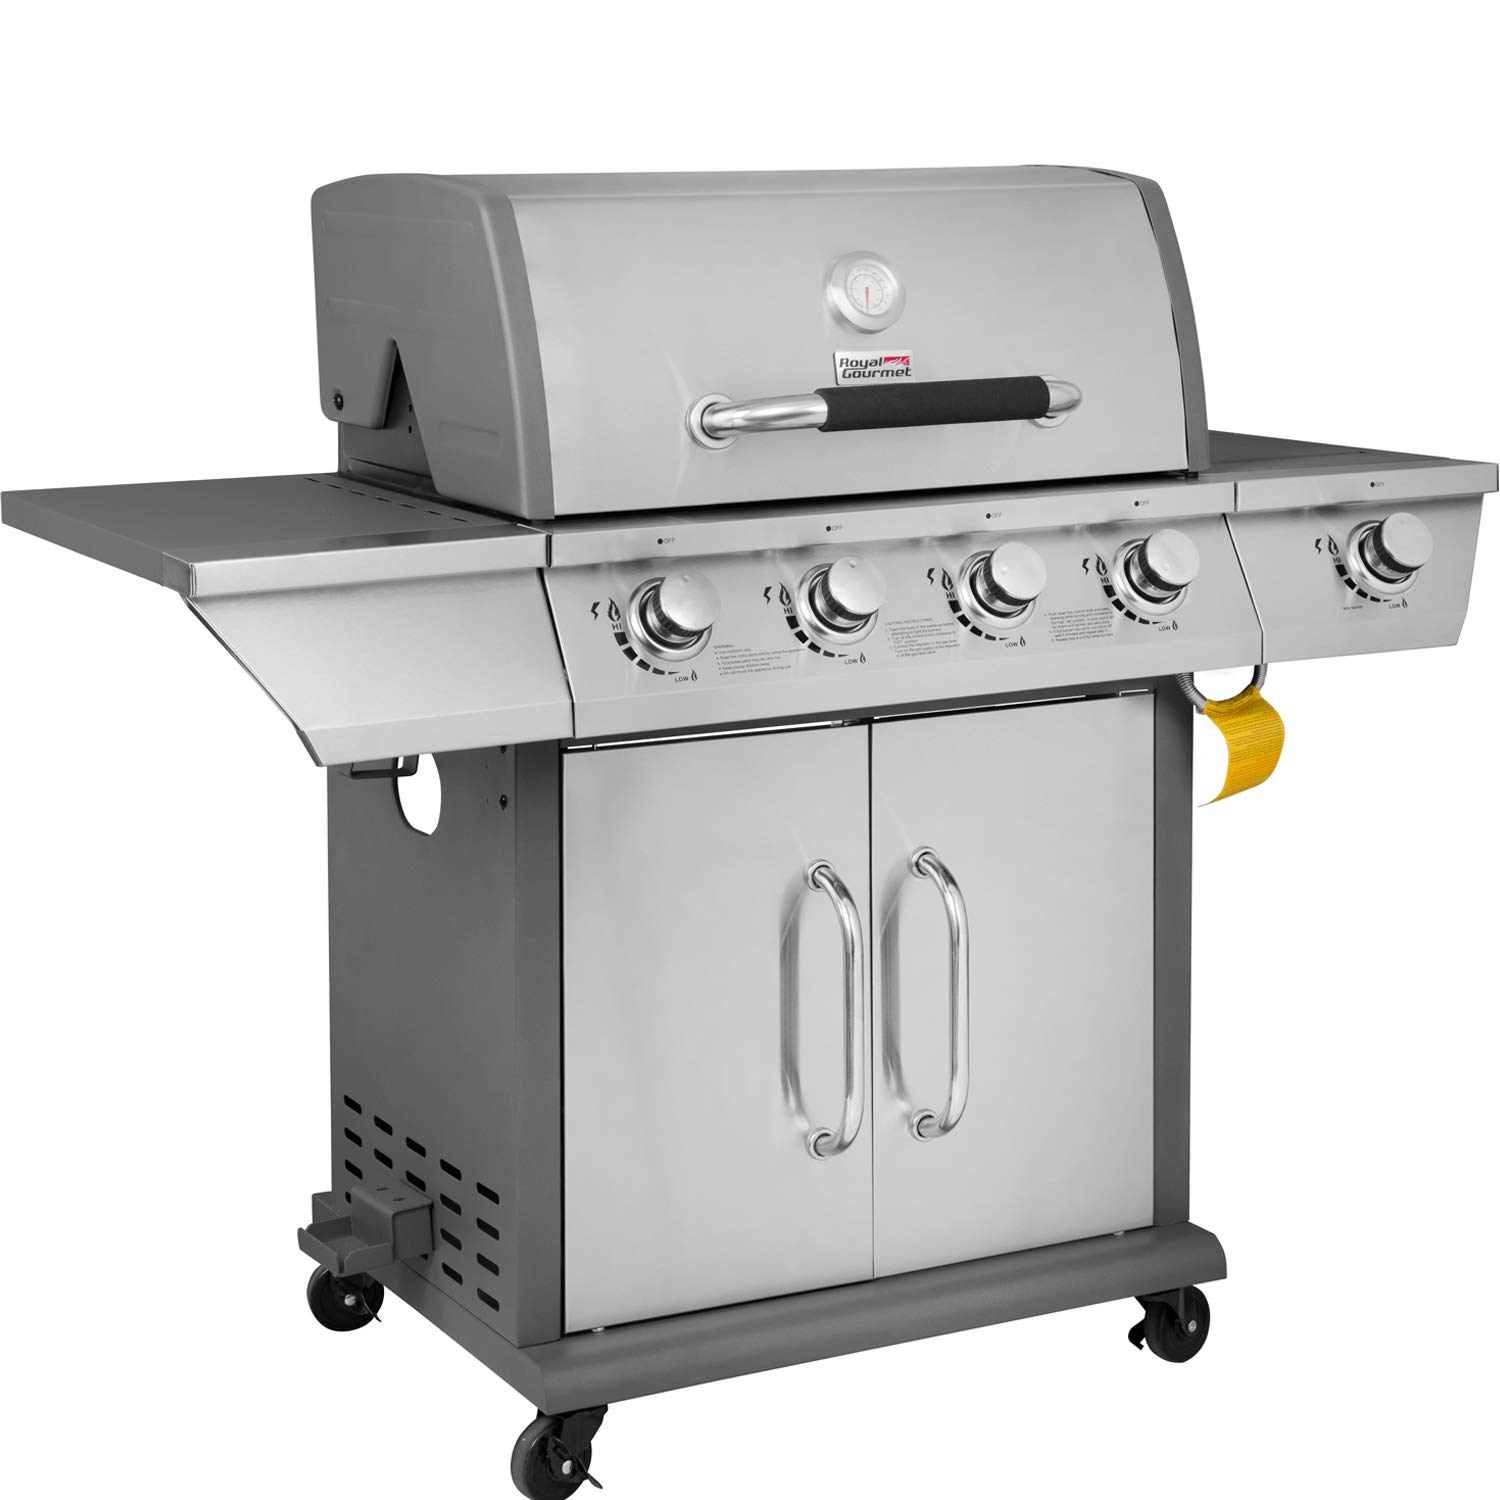 Royal Gourmet GG4302S 4 Propane Gas Grill with Side Burner, 57,000BTU, Stainless Steel by Royal Gourmet